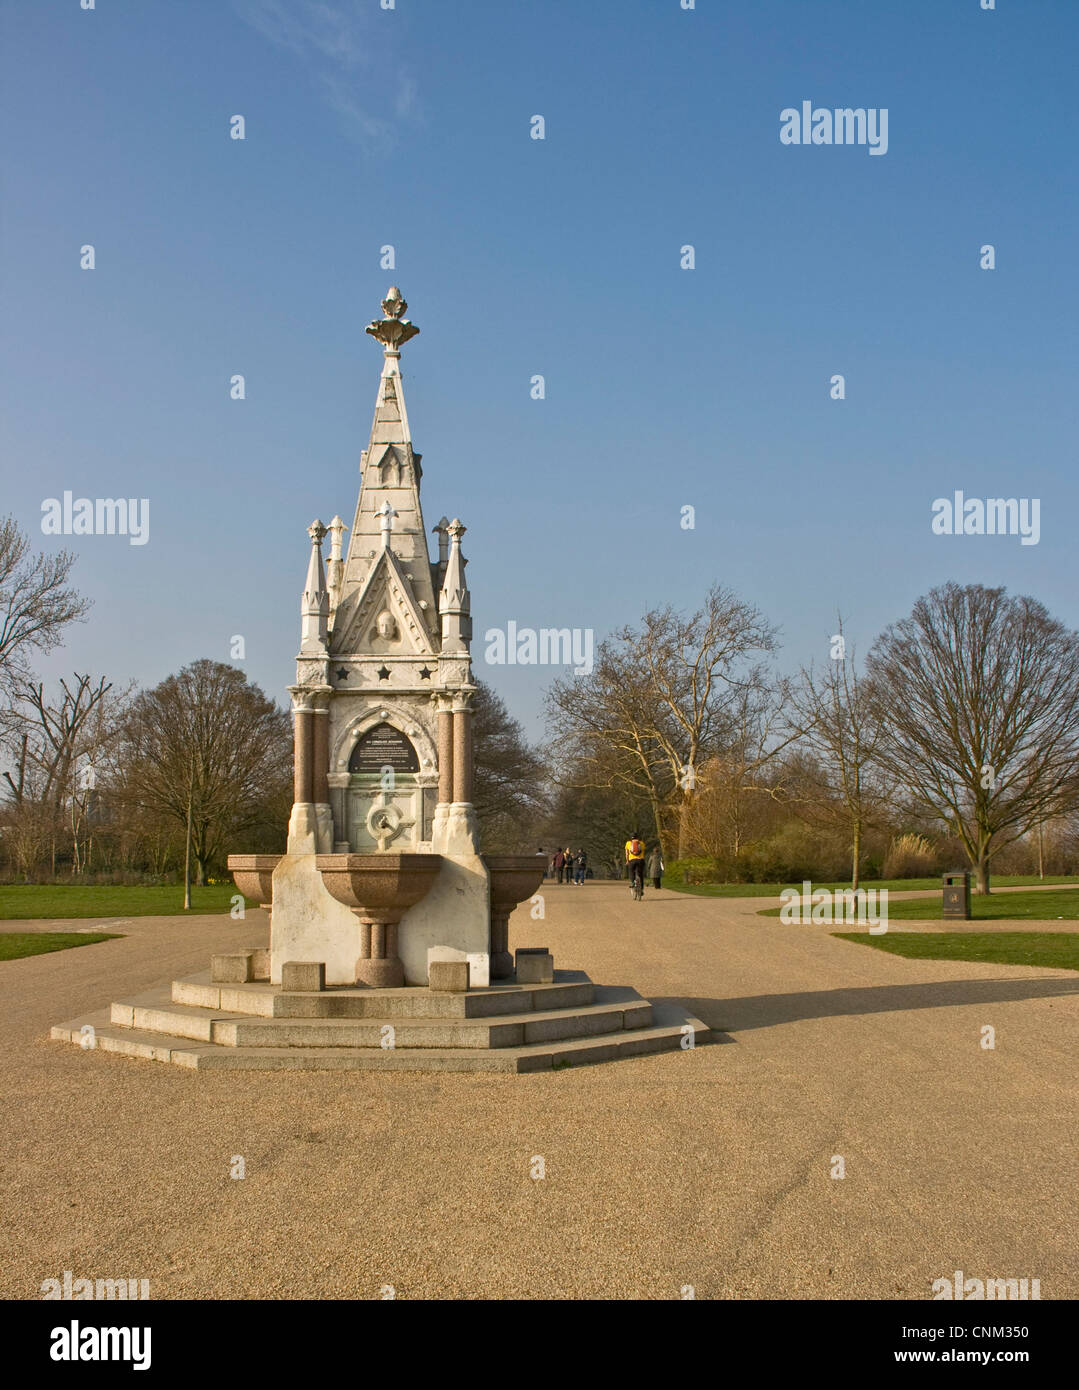 The Ready Money marble and granite drinking fountain in Regent's Park London England Europe - Stock Image